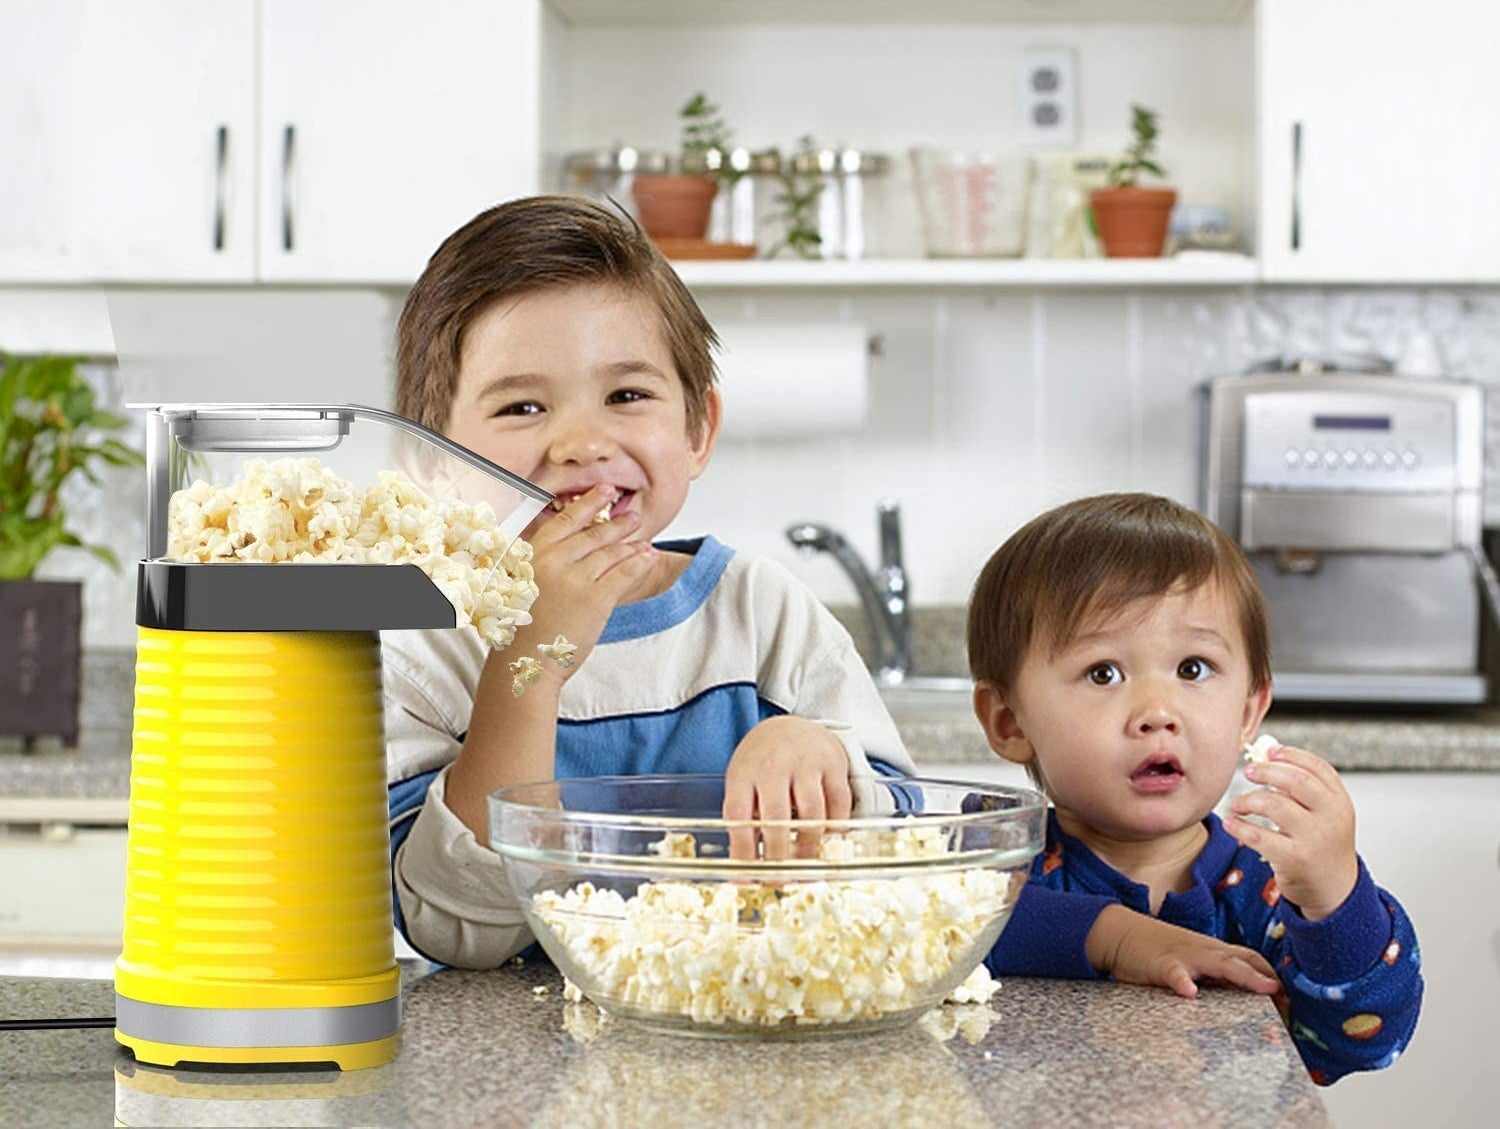 Two kids eat popcorn fresh from a popcorn maker